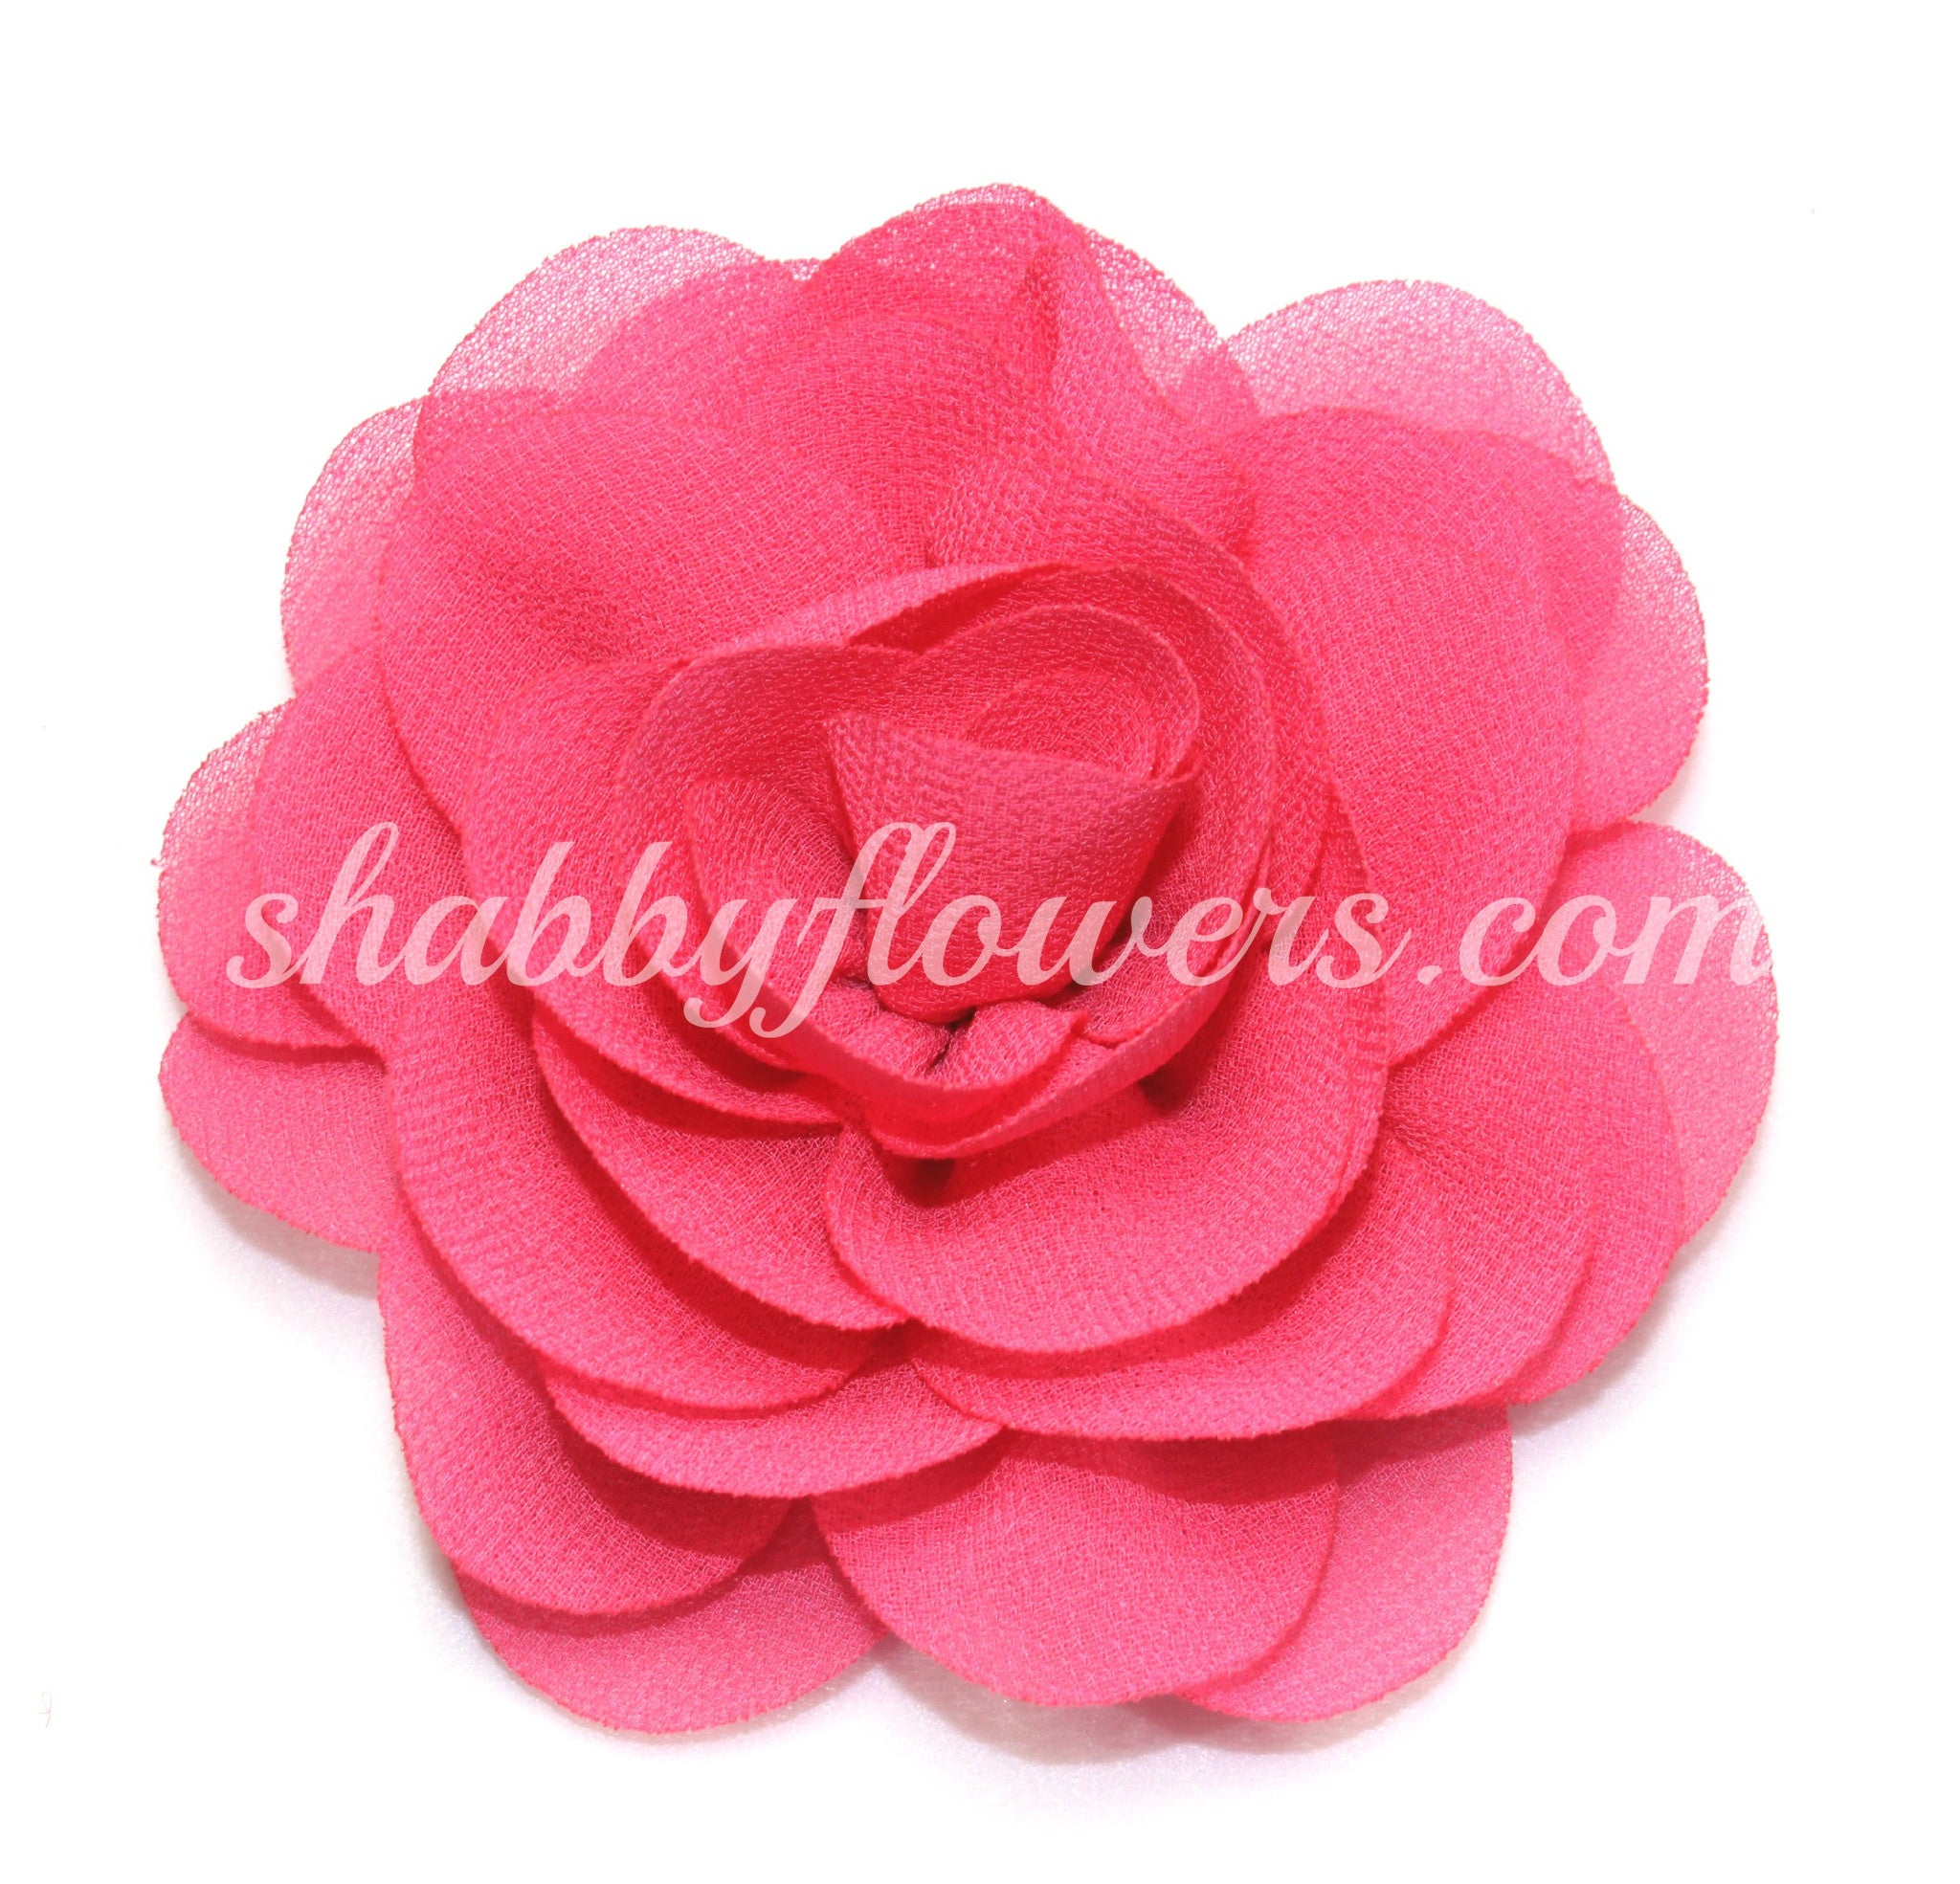 Rose - Hot Pink - shabbyflowers.com